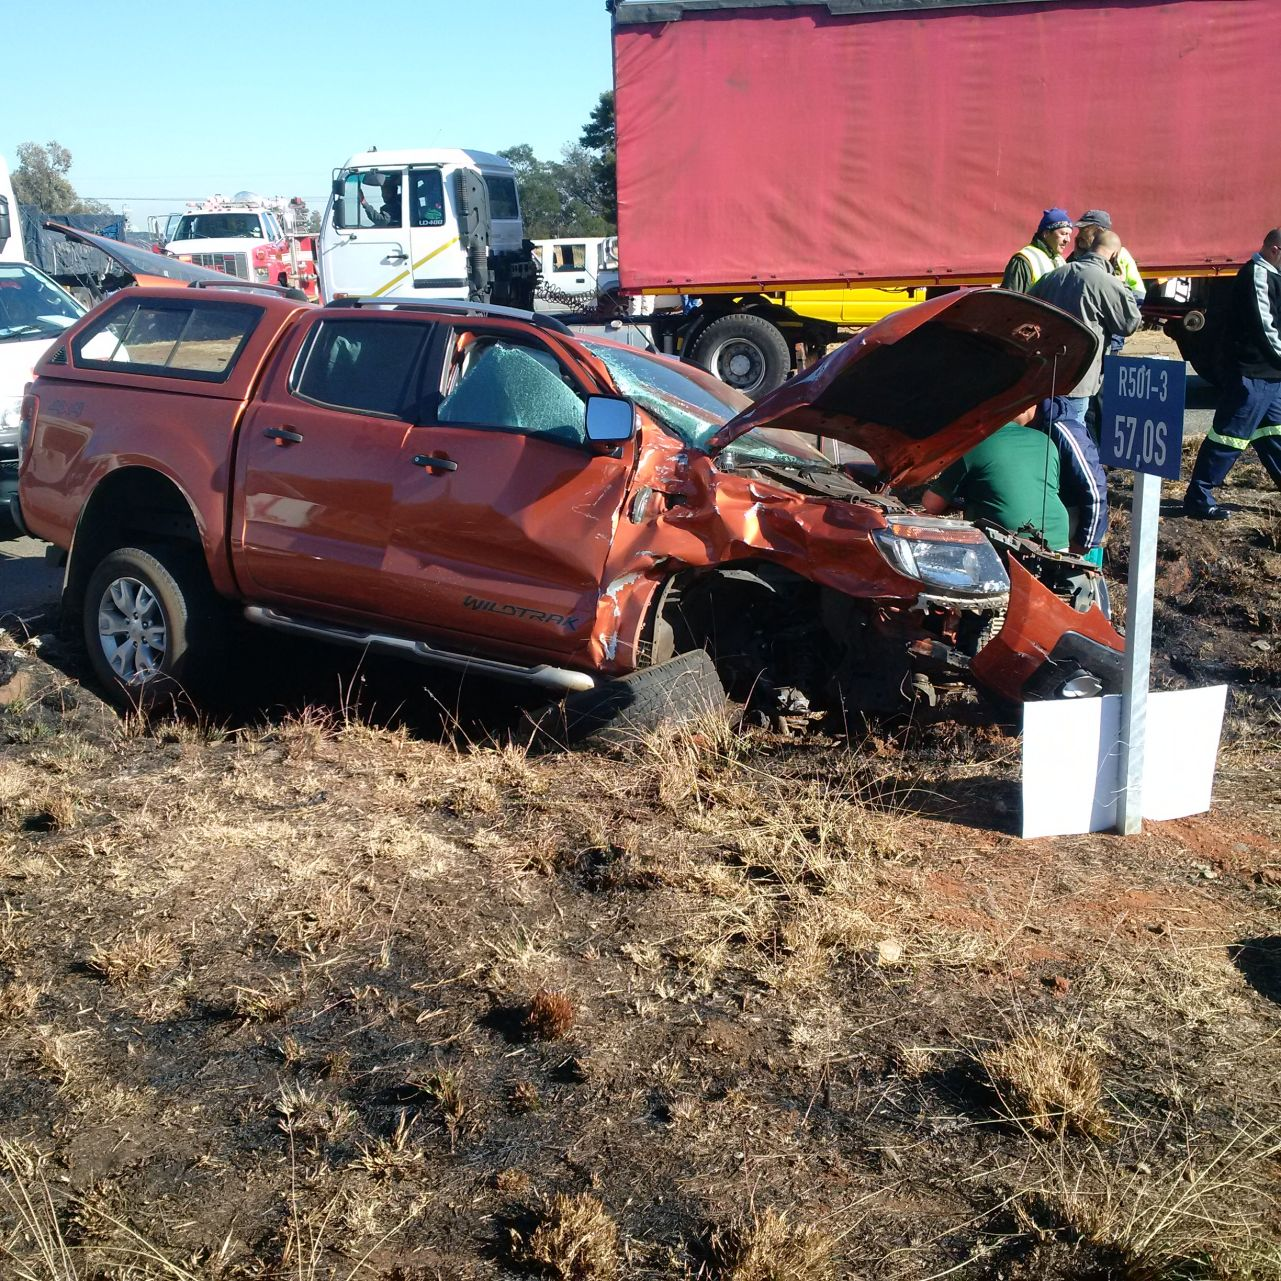 Five injured in truck collision at intersection outside Carletonville